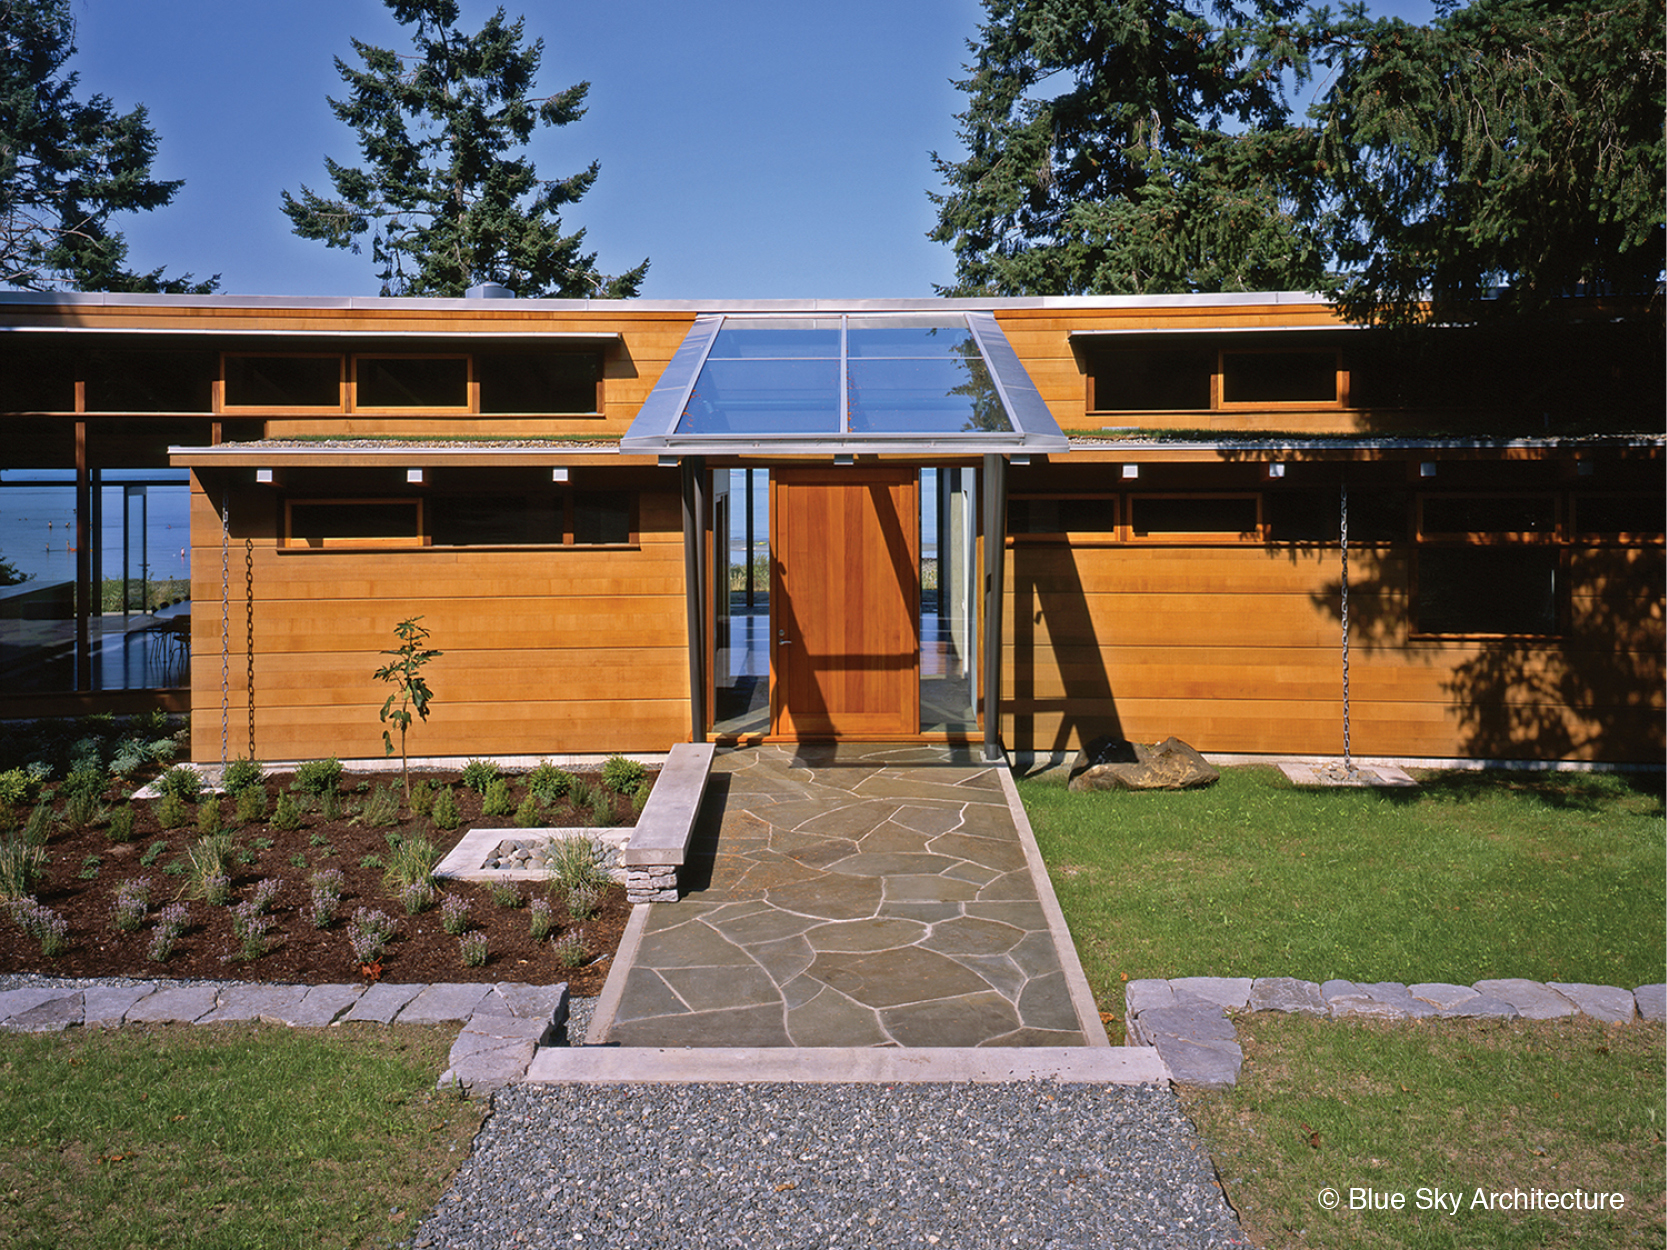 Exterior of the organic architecture of Miracle Beach house